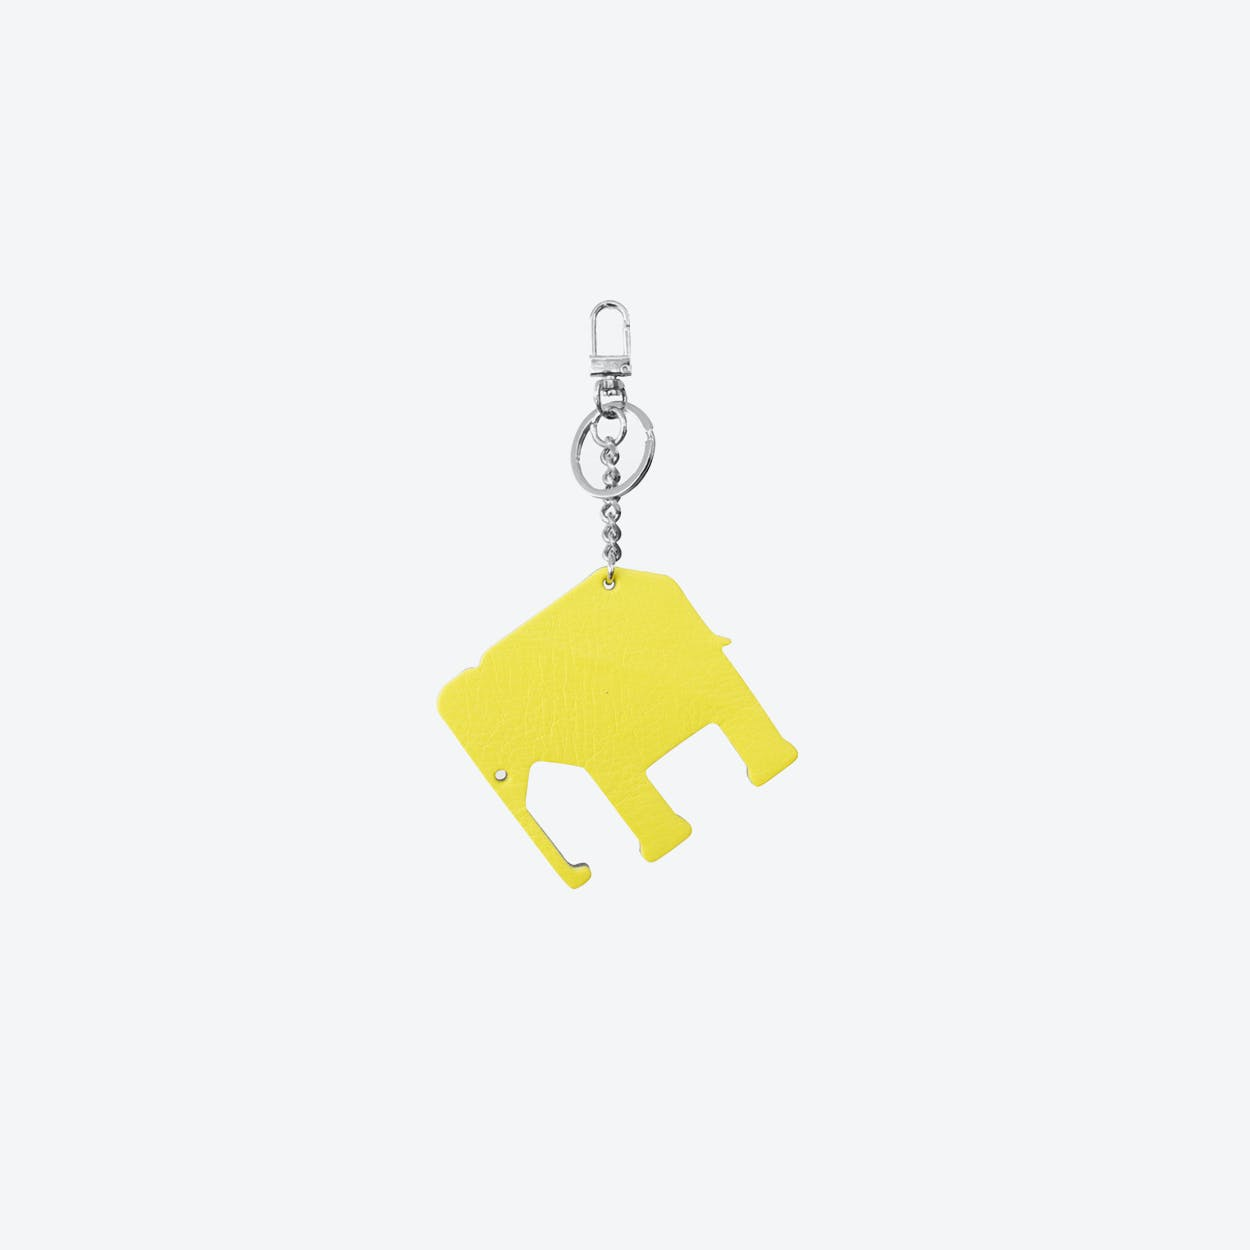 Elephant PET Bag Charm in Yellow